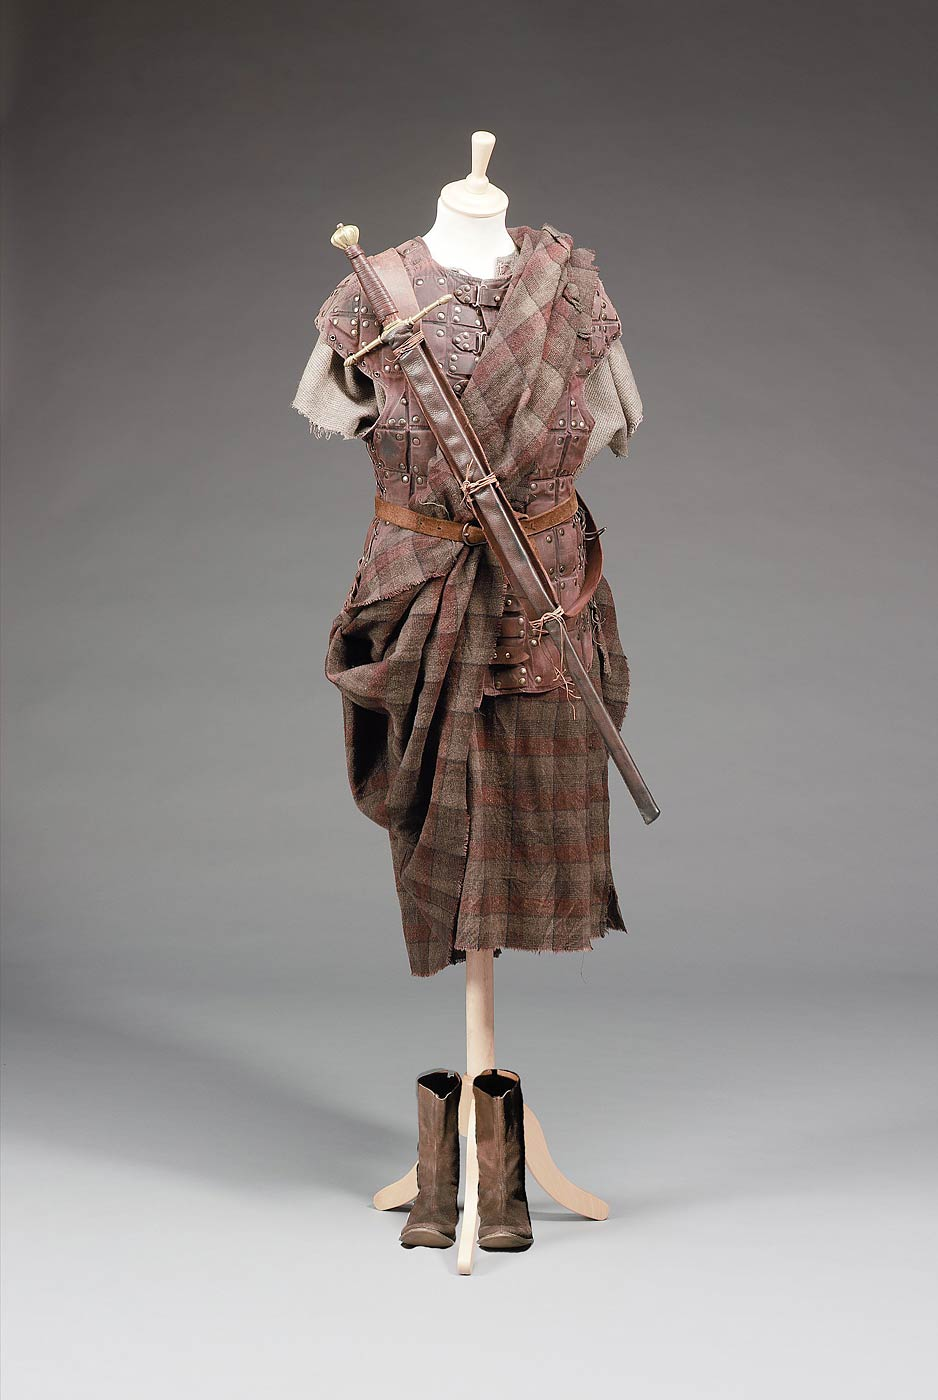 Mel Gibson's William Wallace costume from Braveheart